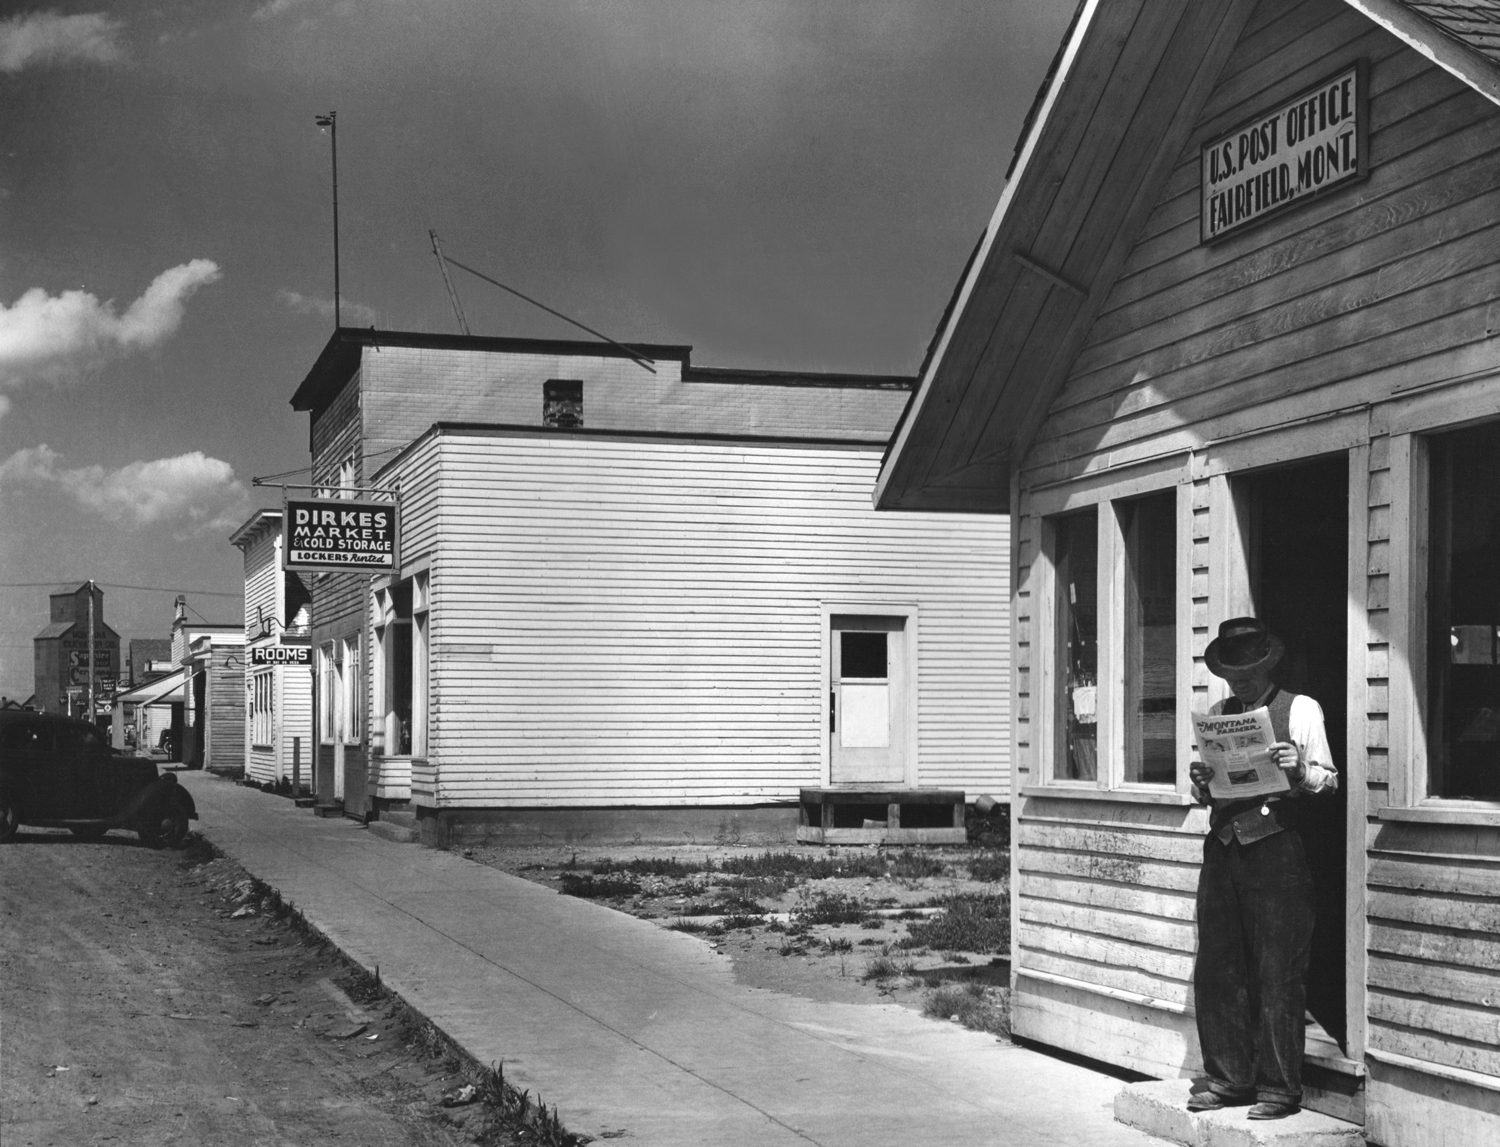 Main Street, Fairfield, Montana